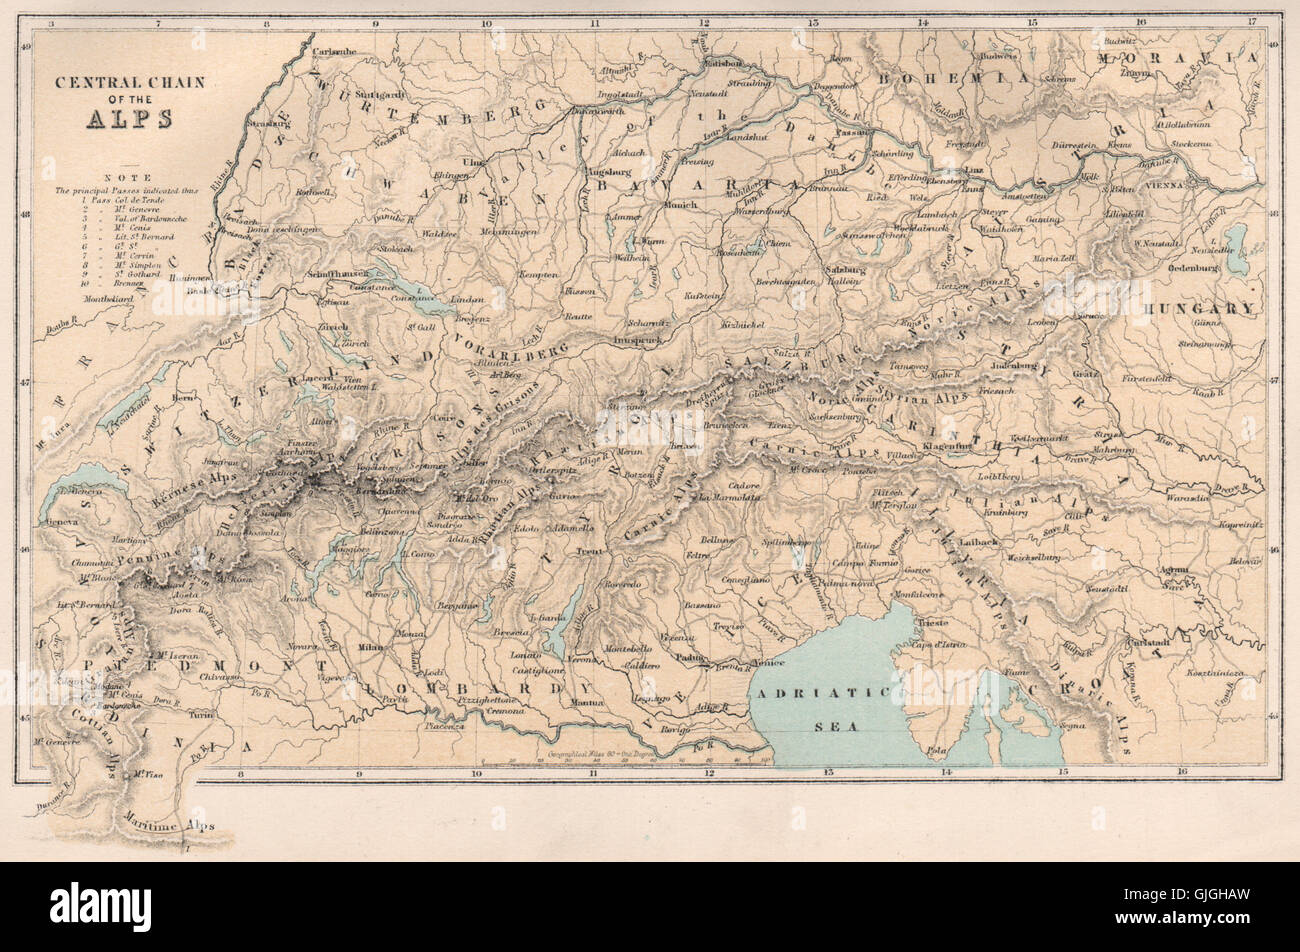 Map Of The Alps In France.The Alps Europe Switzerland Italy France Austria Bartholomew